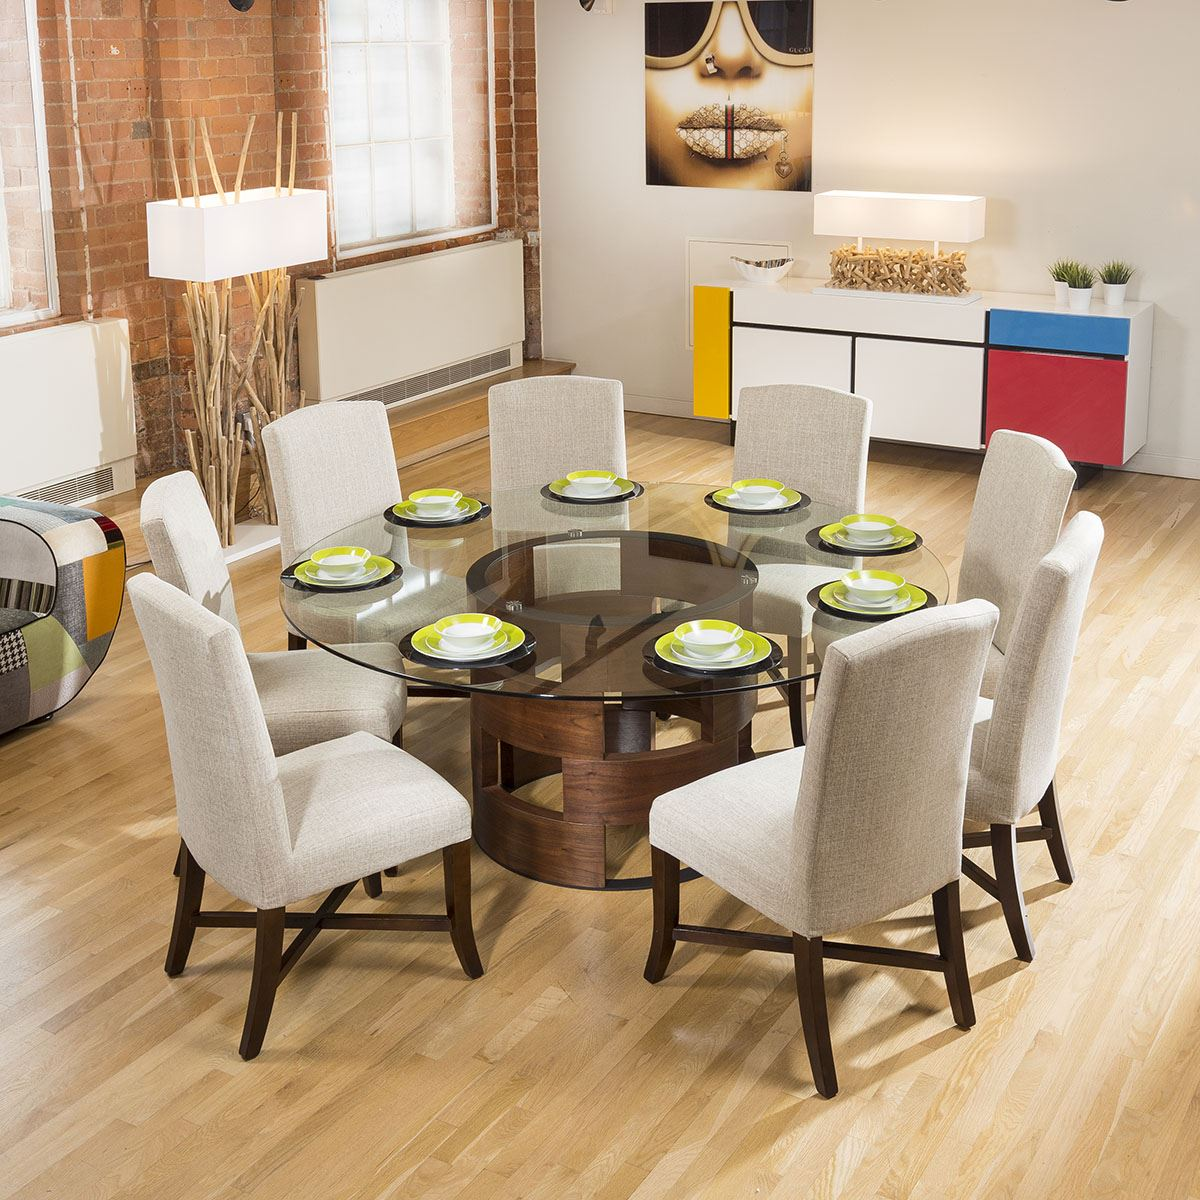 Large Round Glass Top Walnut Dining Table Set 8 Natural Walcot Chairs 740120045085 Ebay